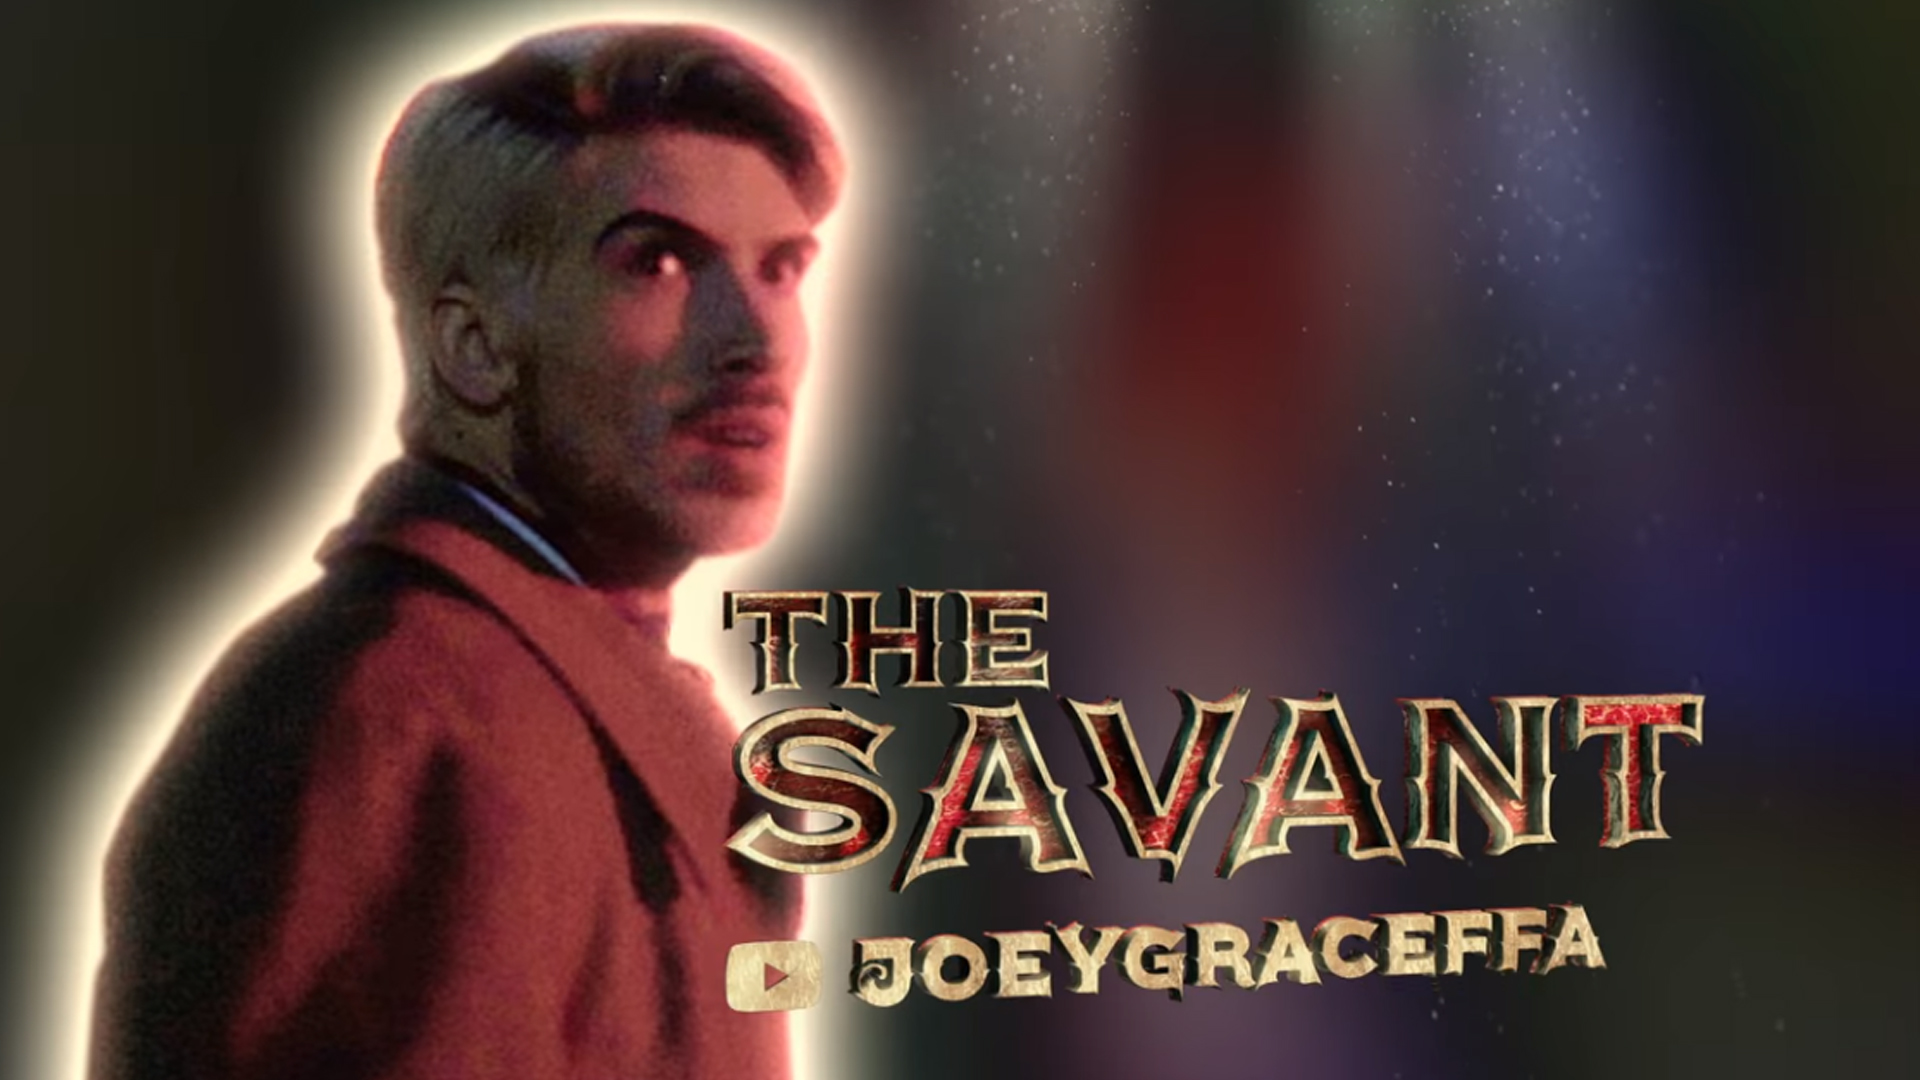 Watch access interview escape the night joey graceffa on watch access interview escape the night joey graceffa on assembling the cast for season 3 nbc m4hsunfo